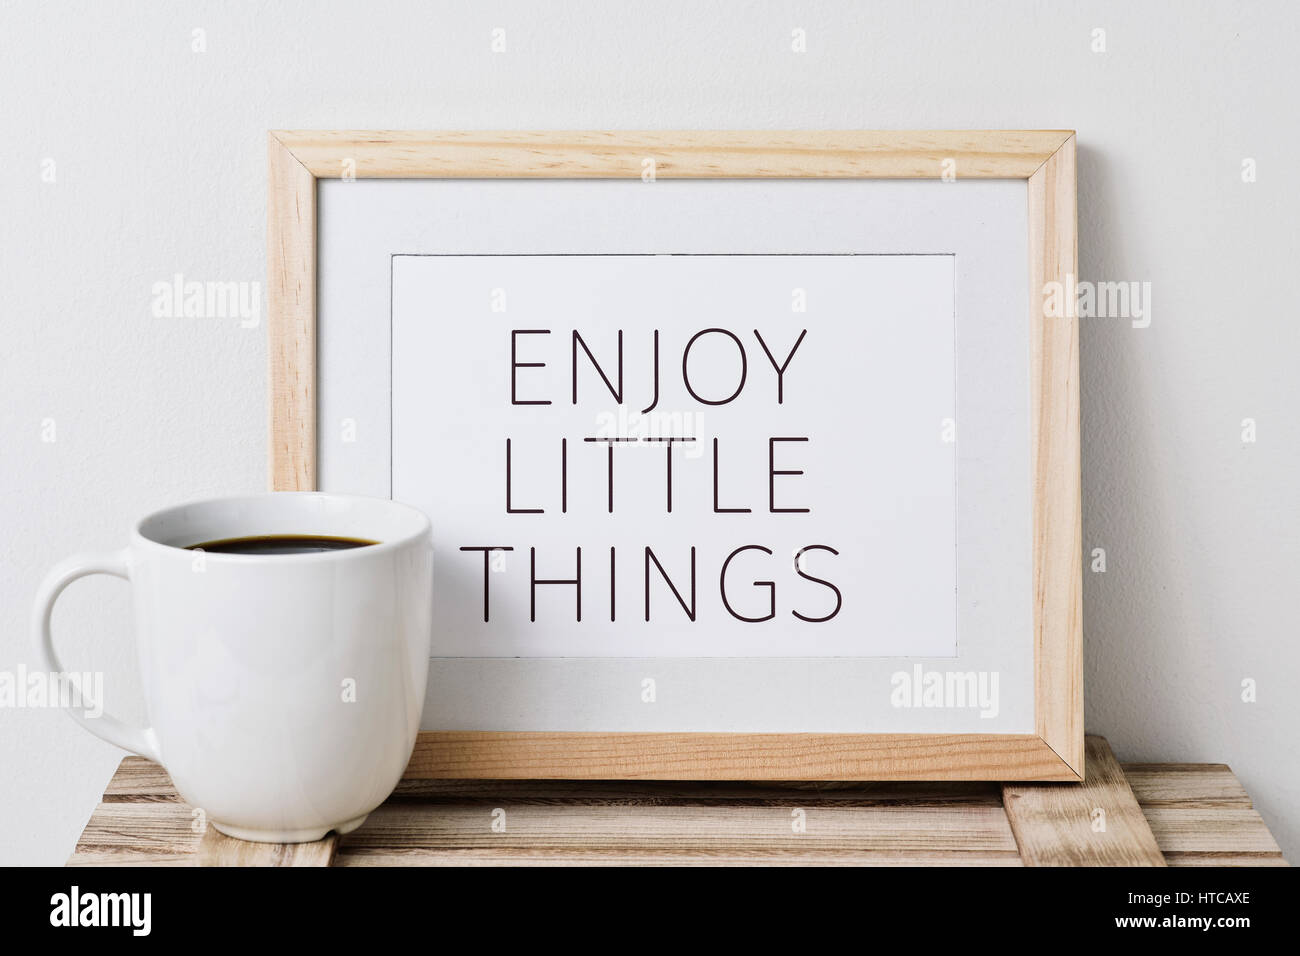 a wooden-framed picture with the text enjoy little things written in it and a cup of coffee, on a rustic wooden - Stock Image